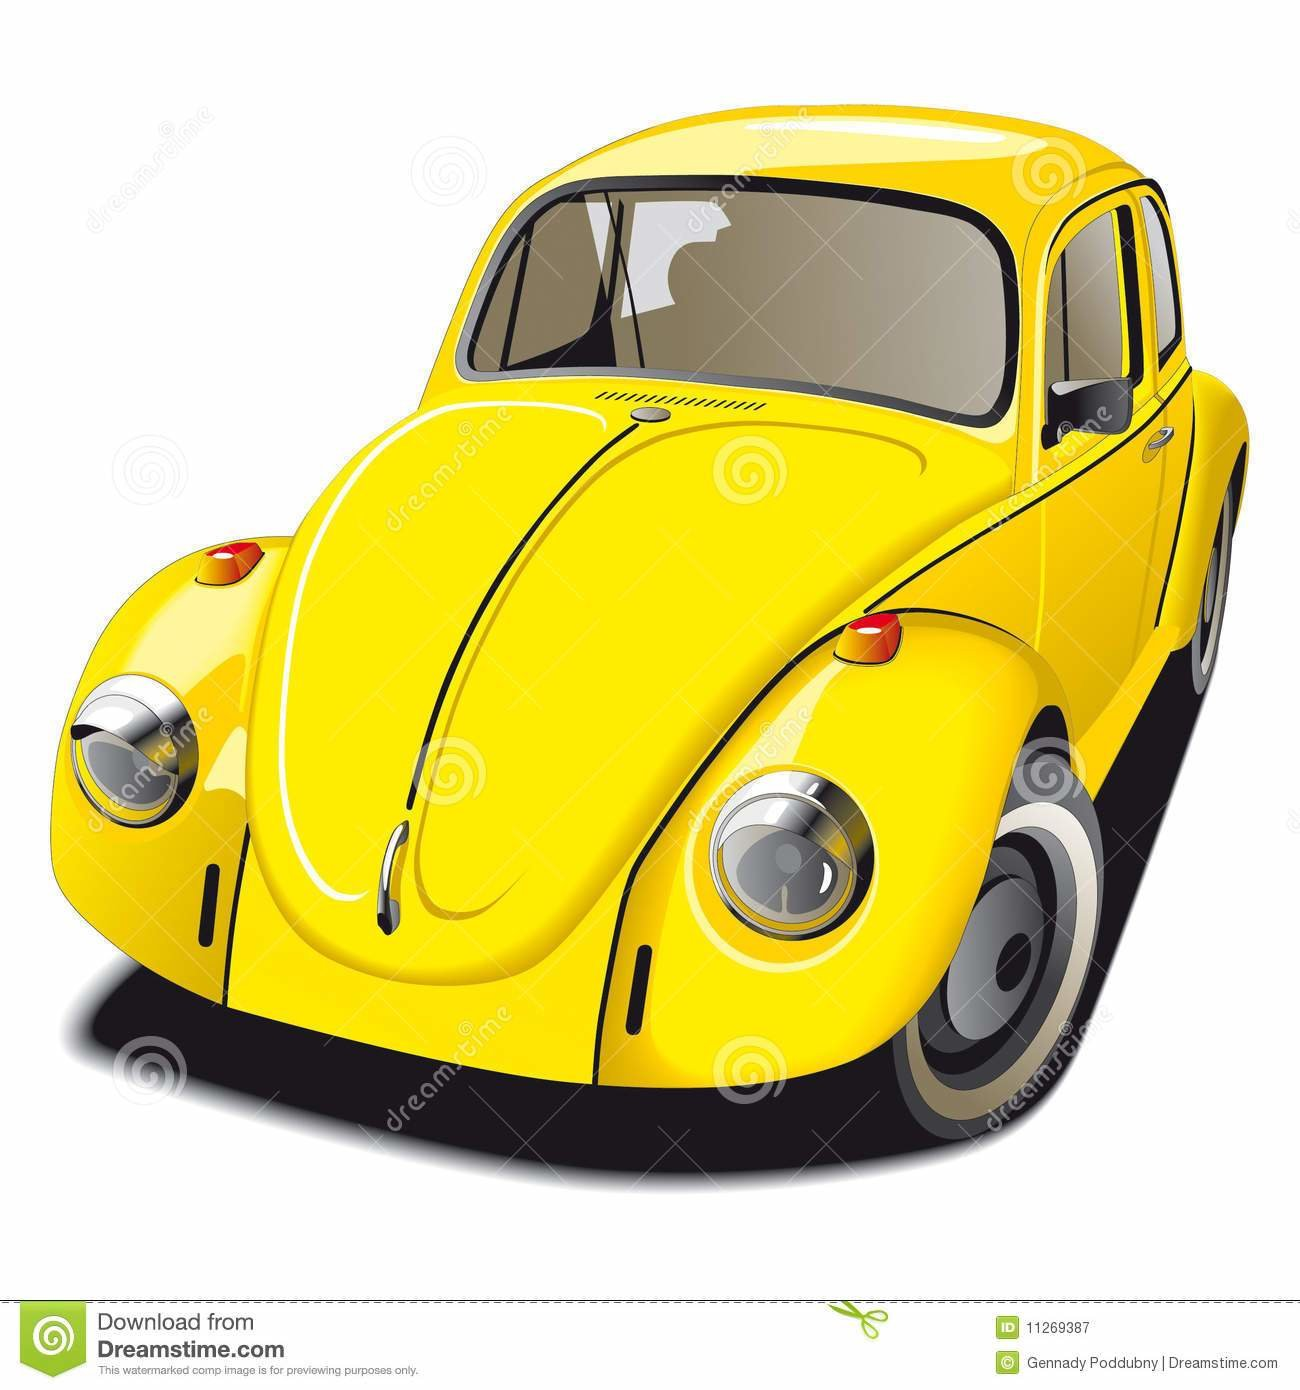 New Old Fashioned Yellow Car Stock Vector Illustration Of On This Month